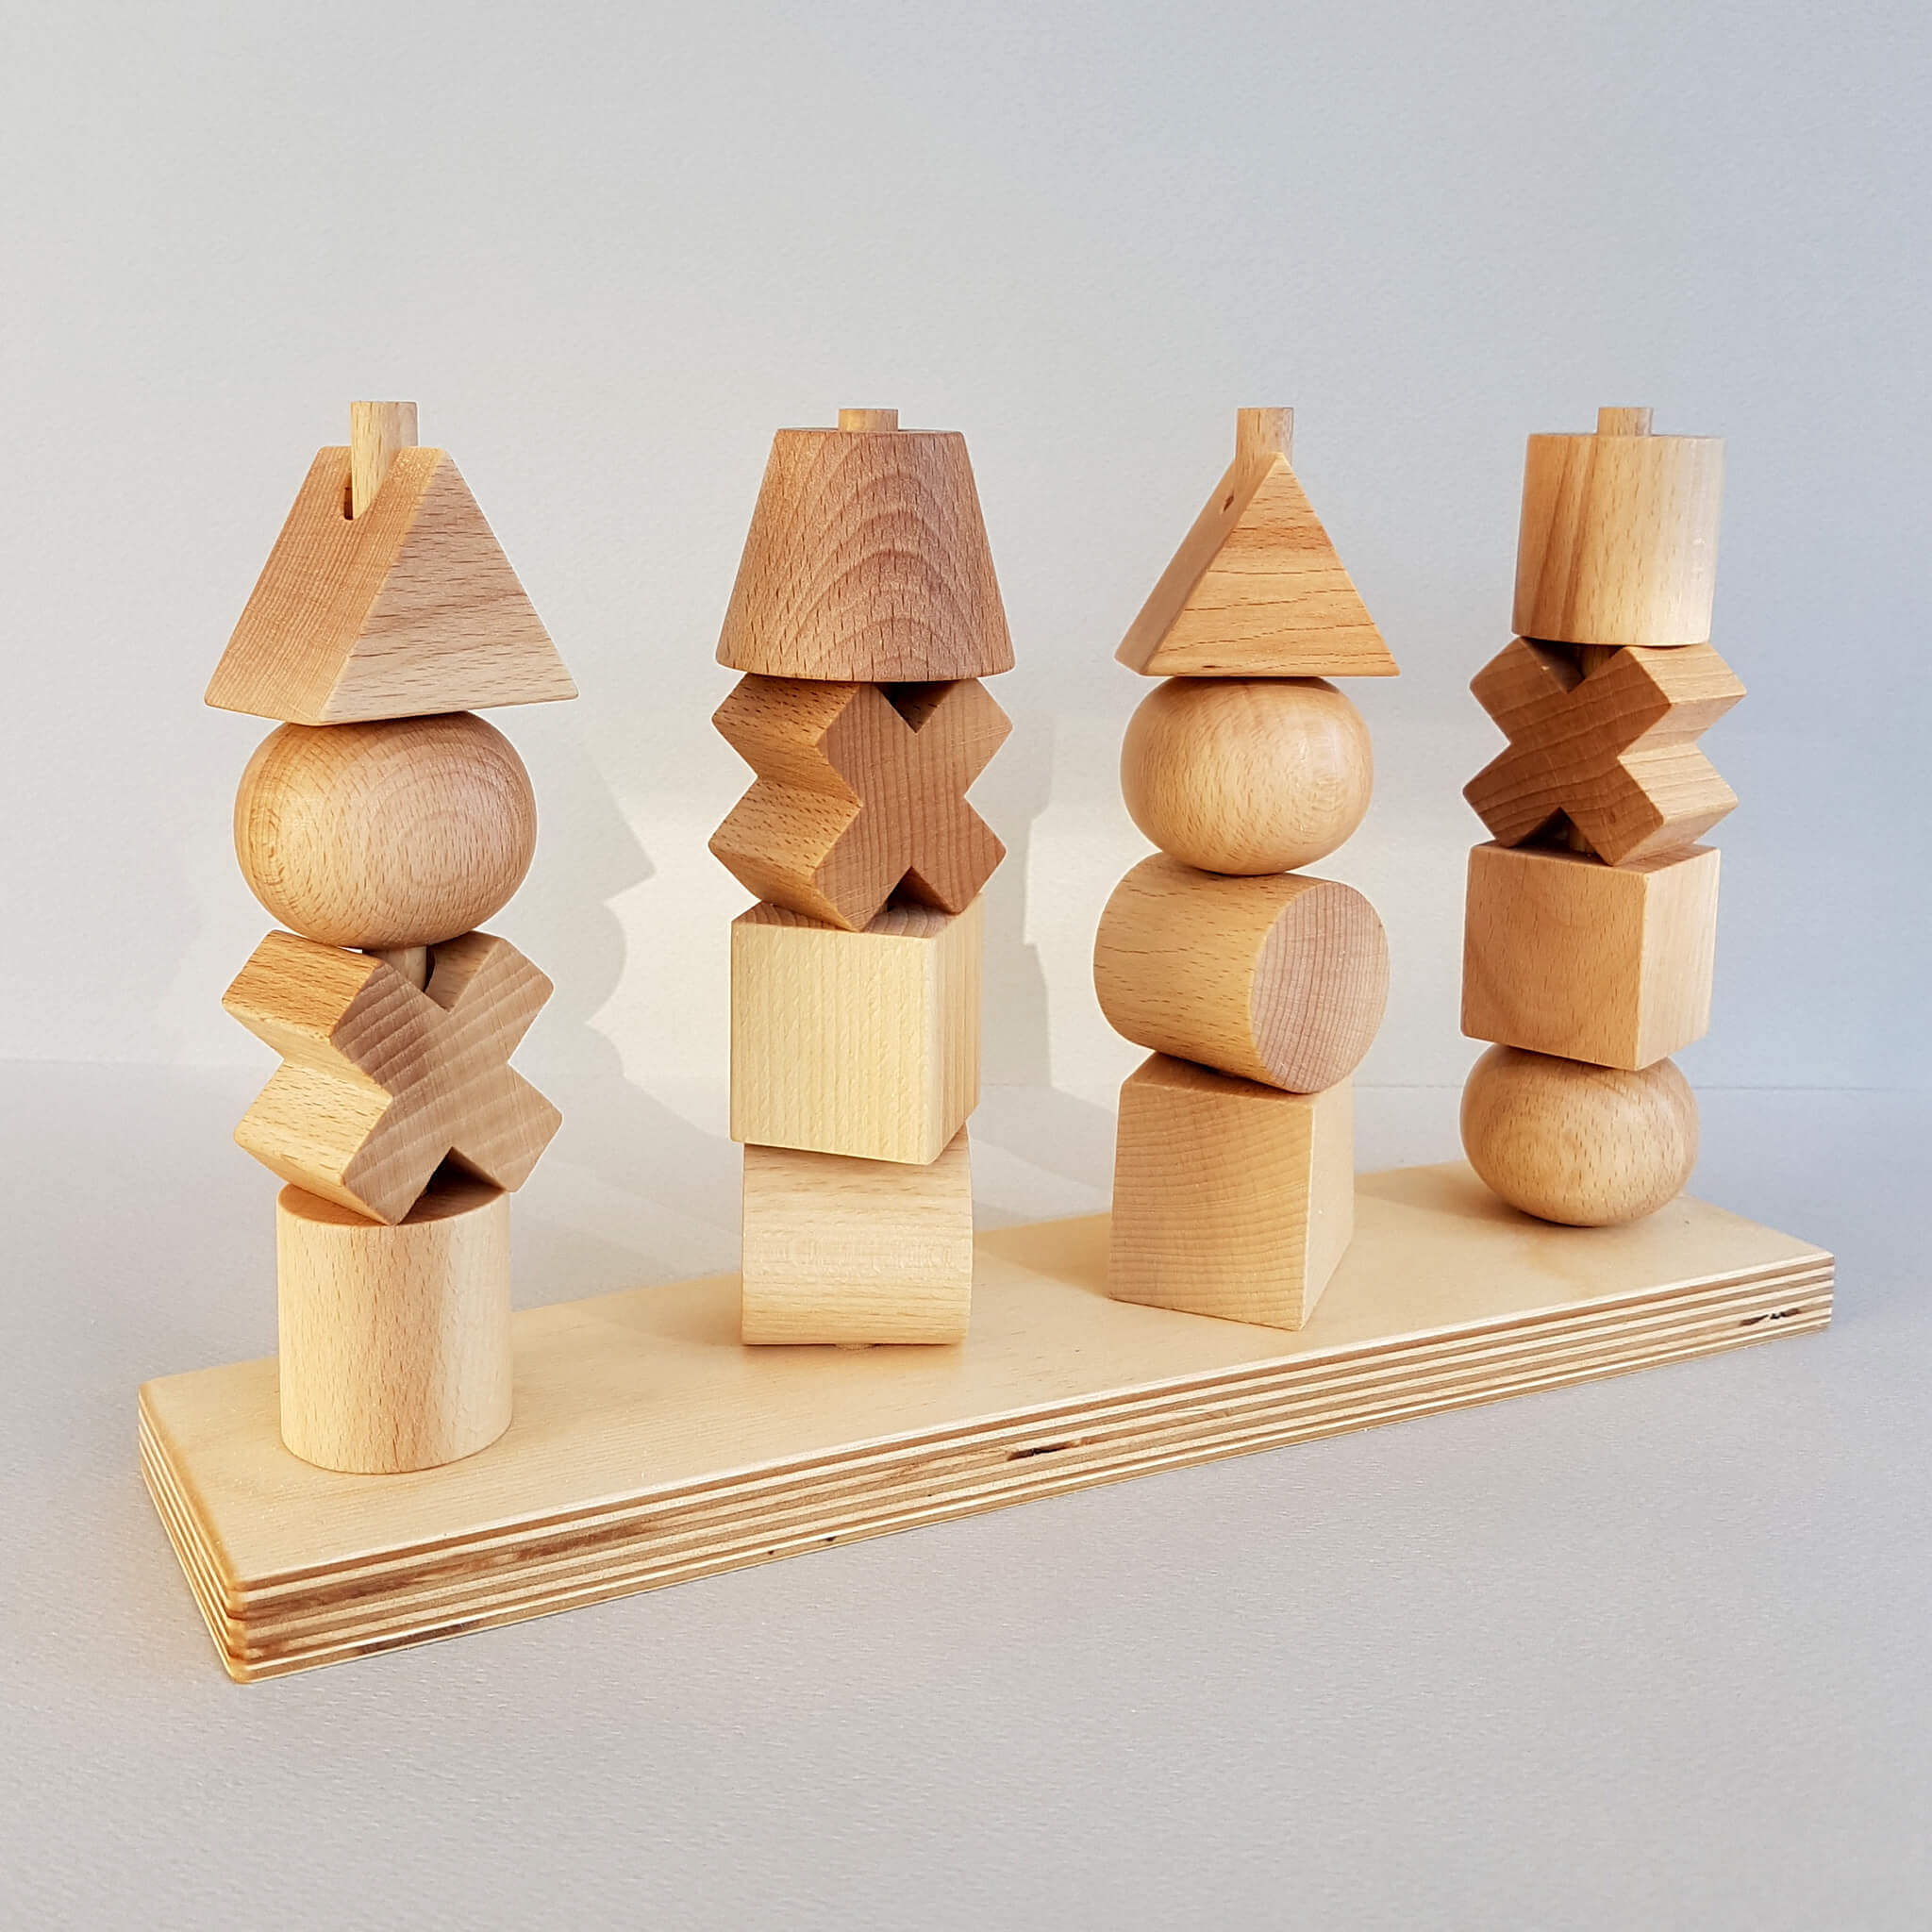 Wooden Story Natural Stacking Toy Handcrafted in Poland